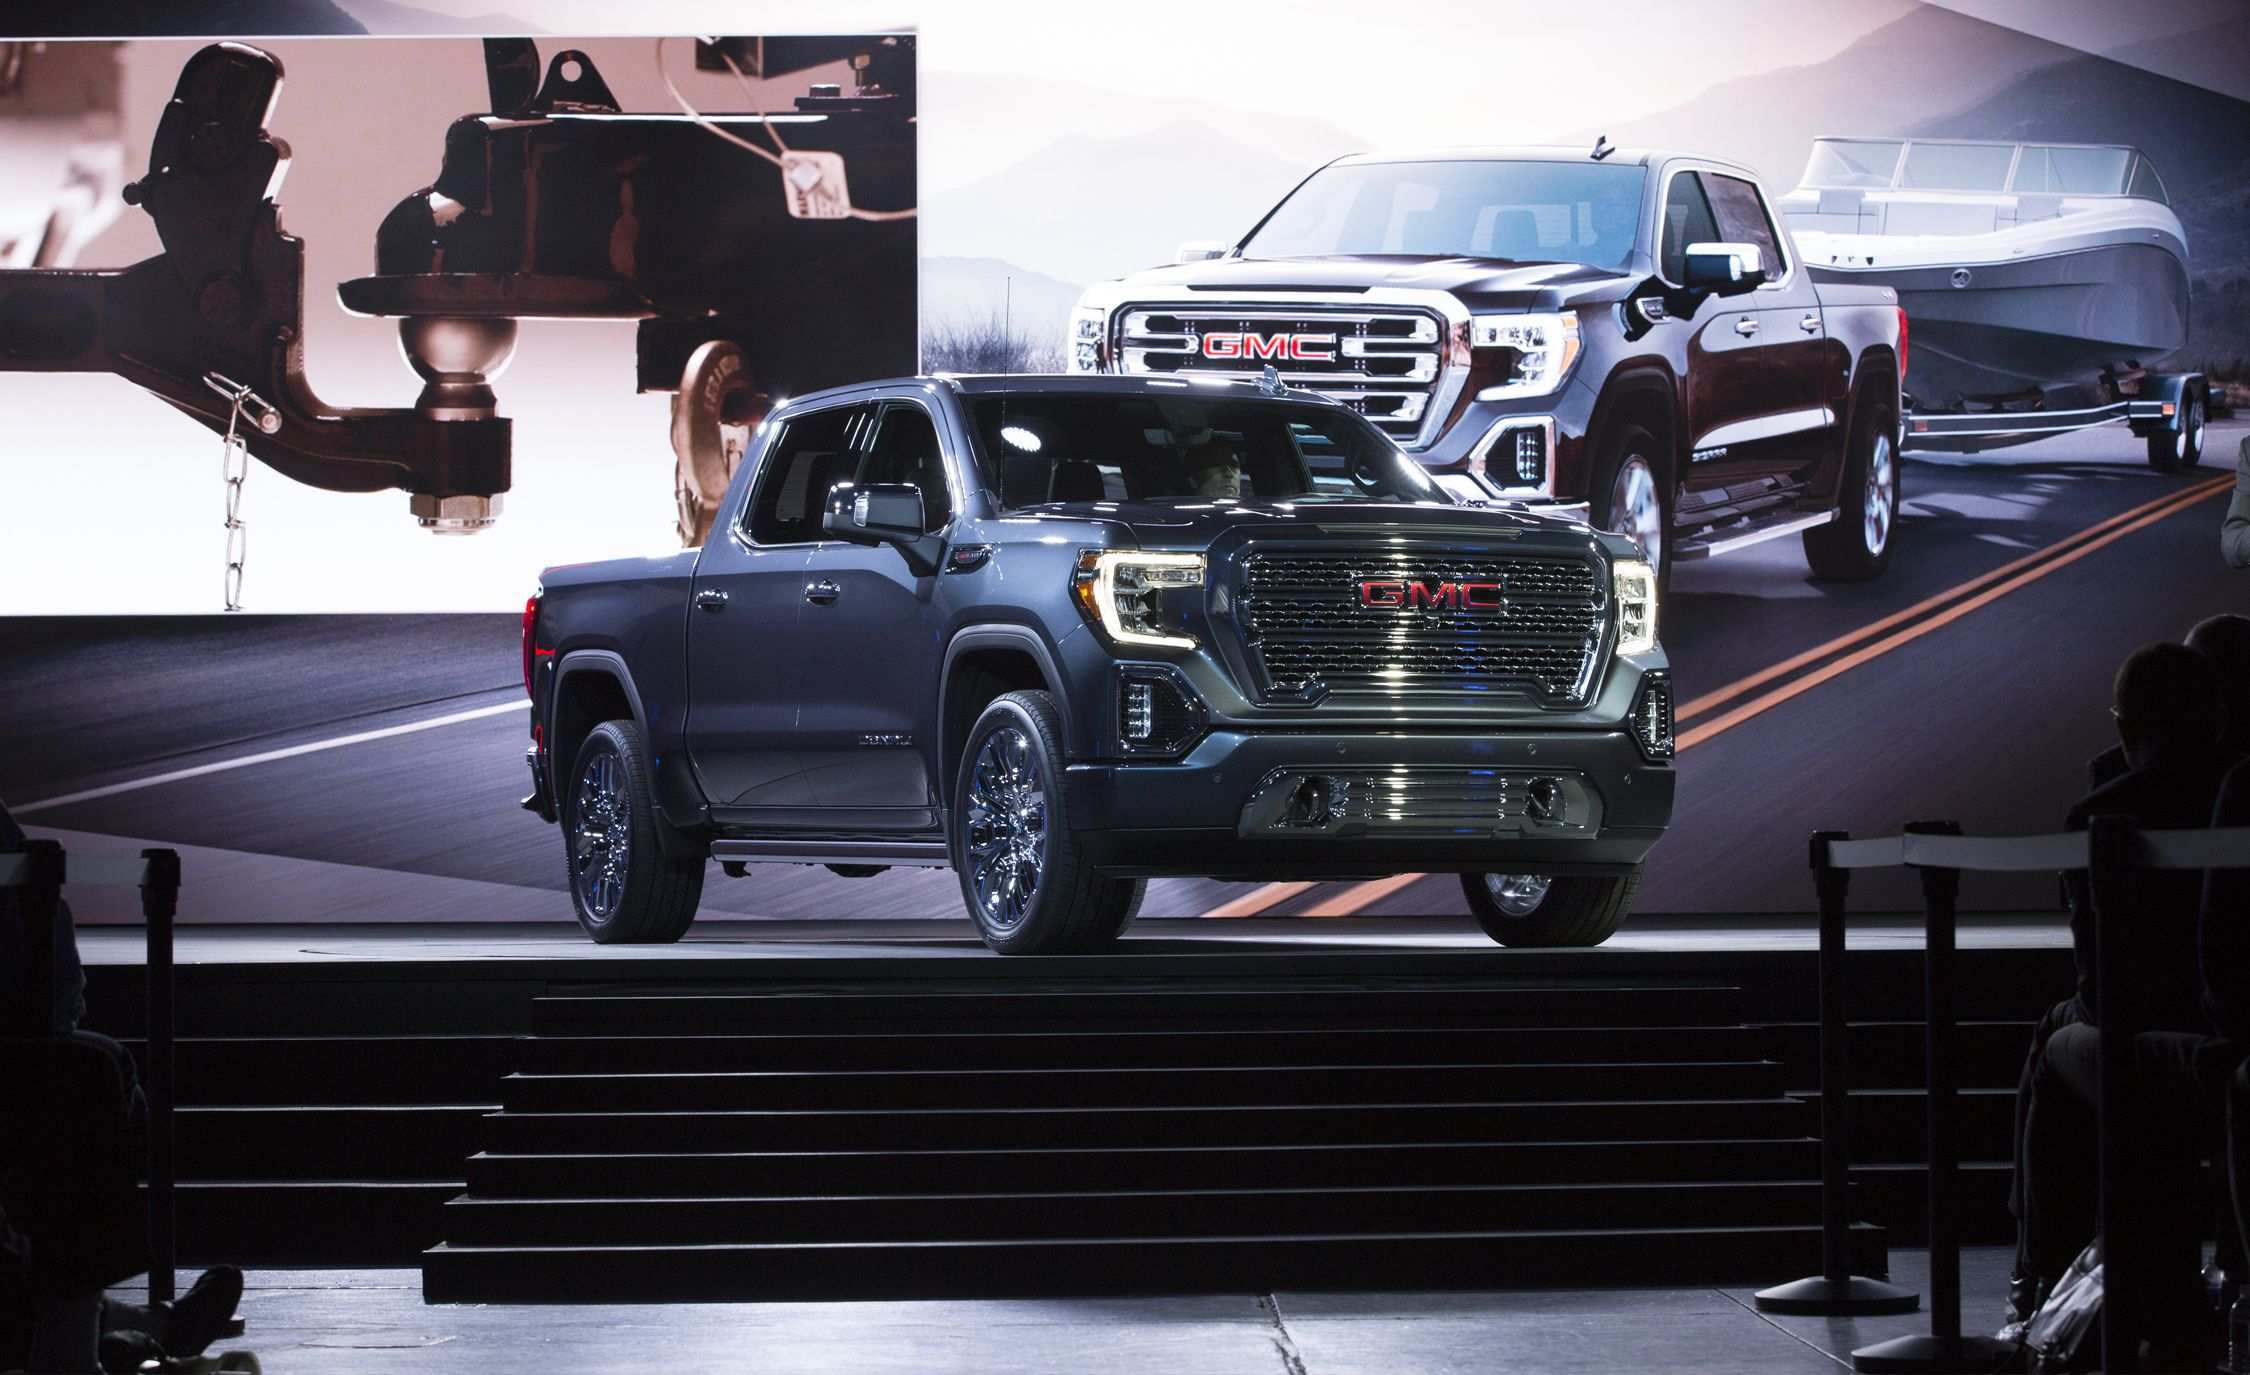 83 Concept of 2019 Gmc 3 0 Diesel Specs Redesign with 2019 Gmc 3 0 Diesel Specs